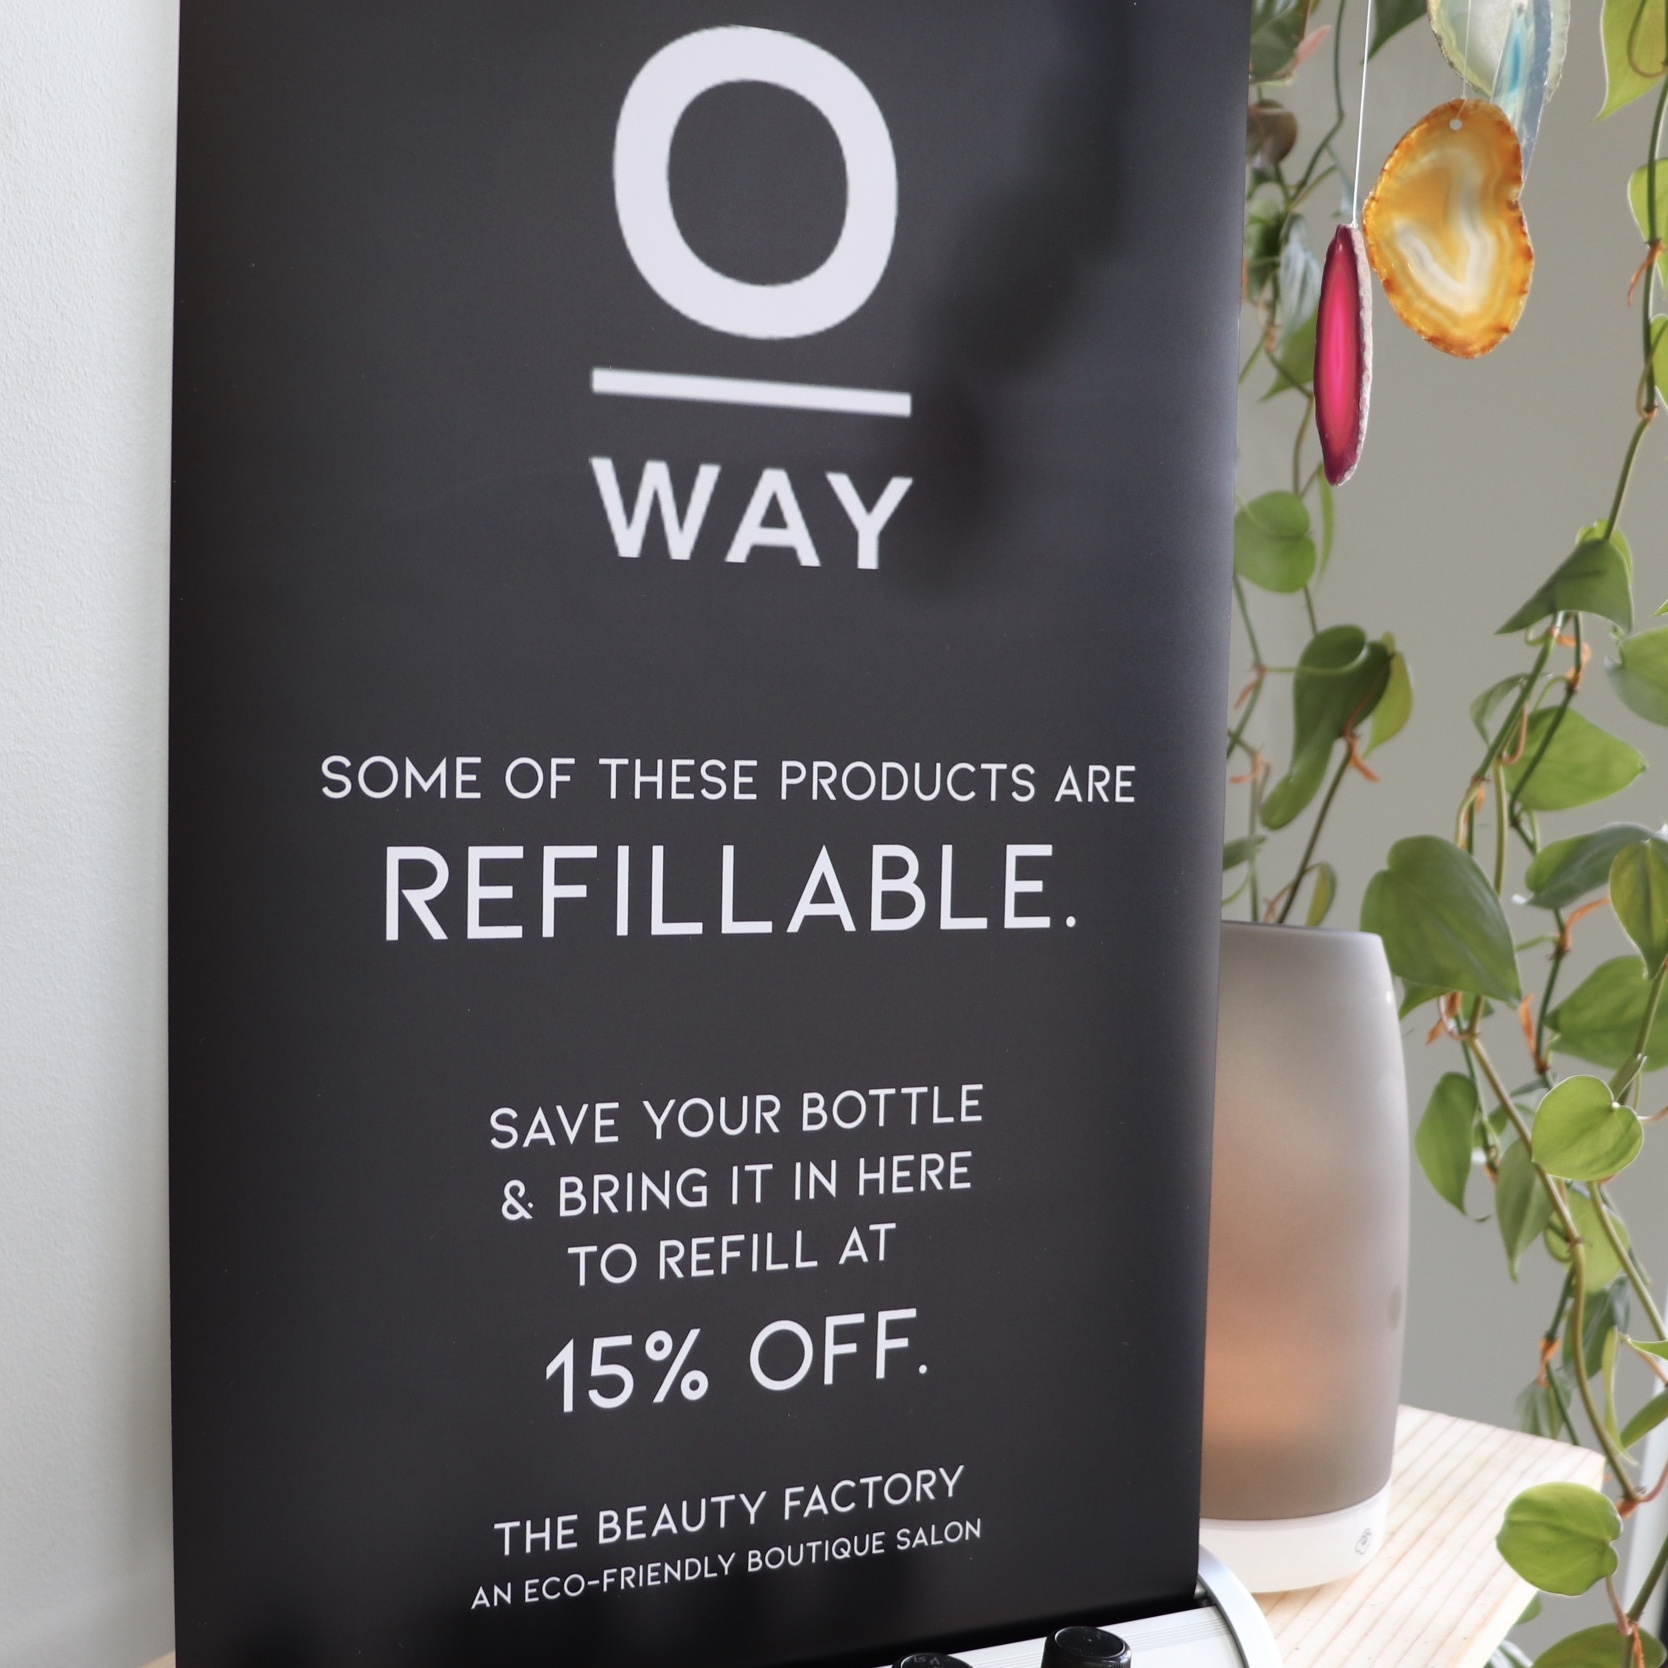 We offer a discount when you refill your shampoo bottles.